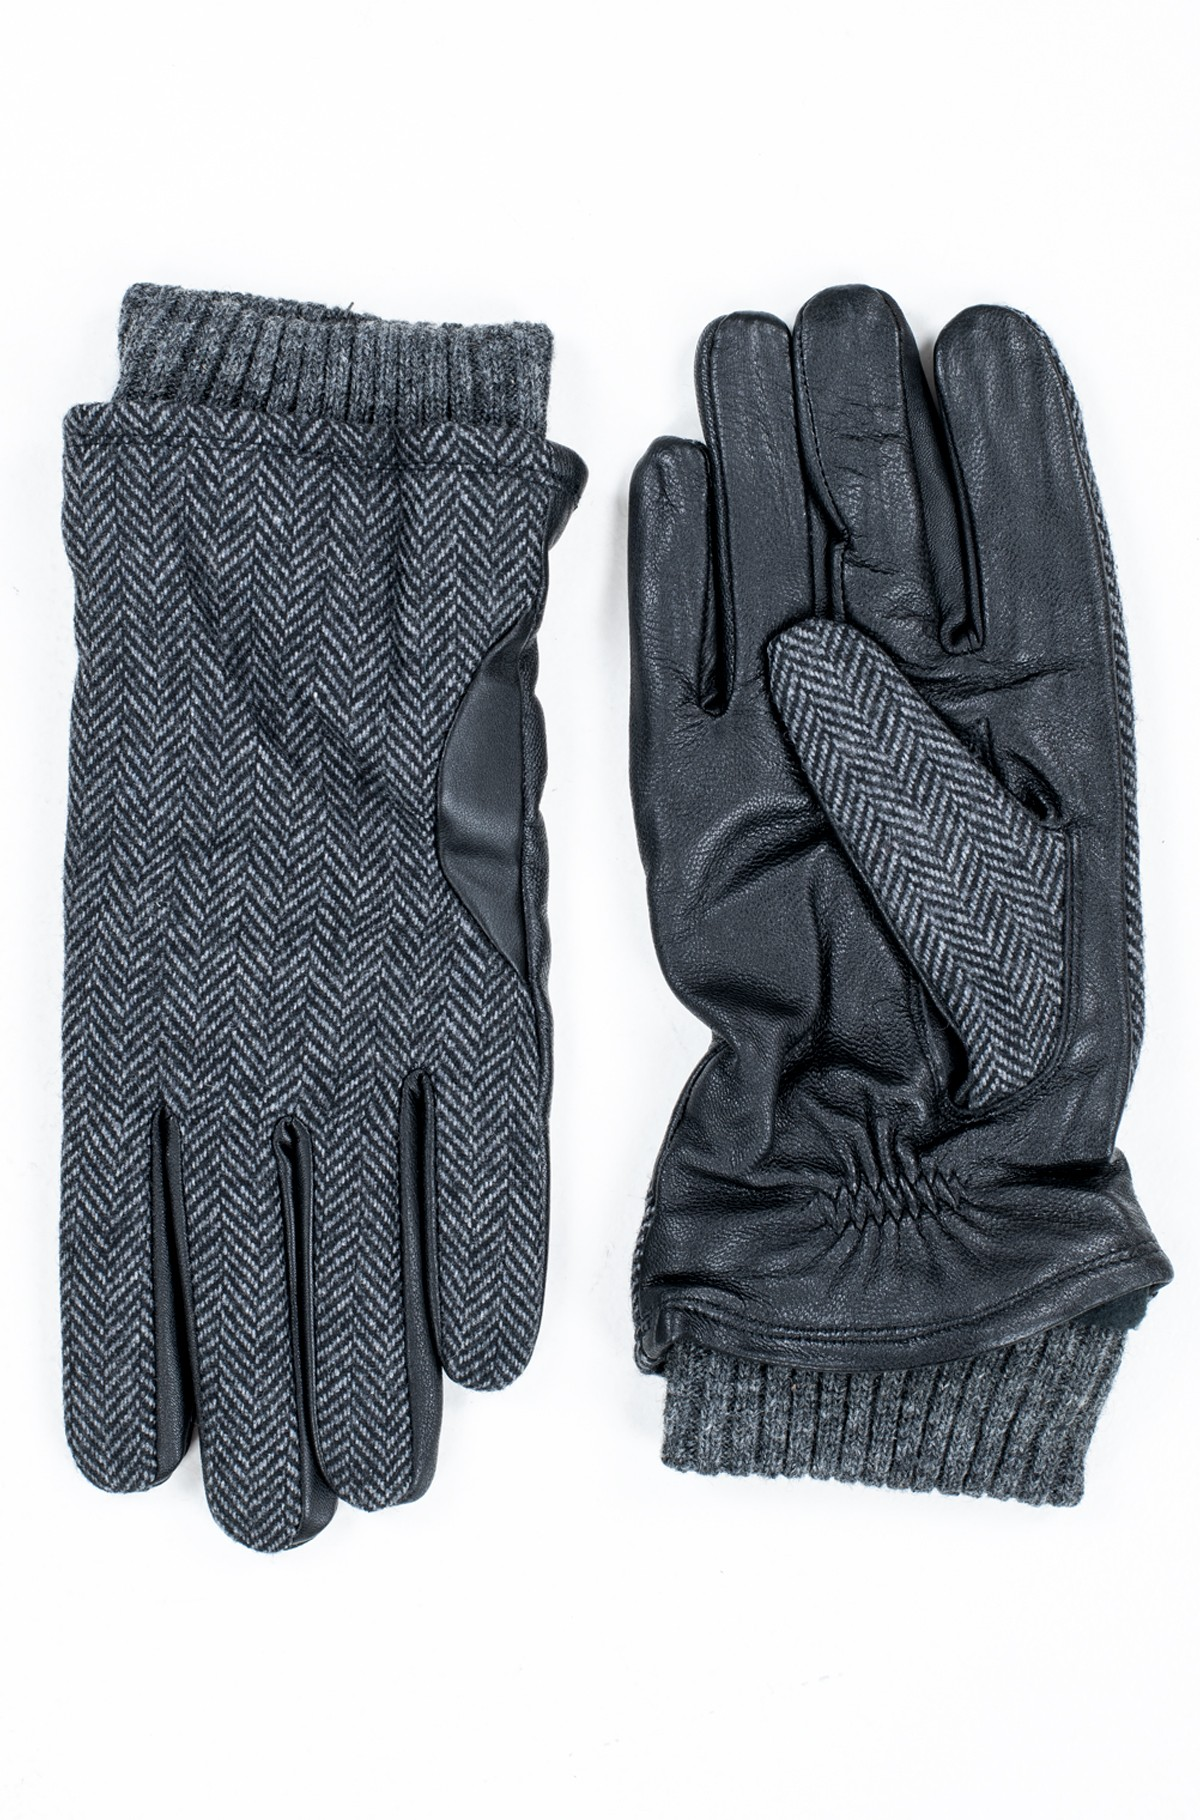 Kindad TELMO GLOVES/PM080056-full-1